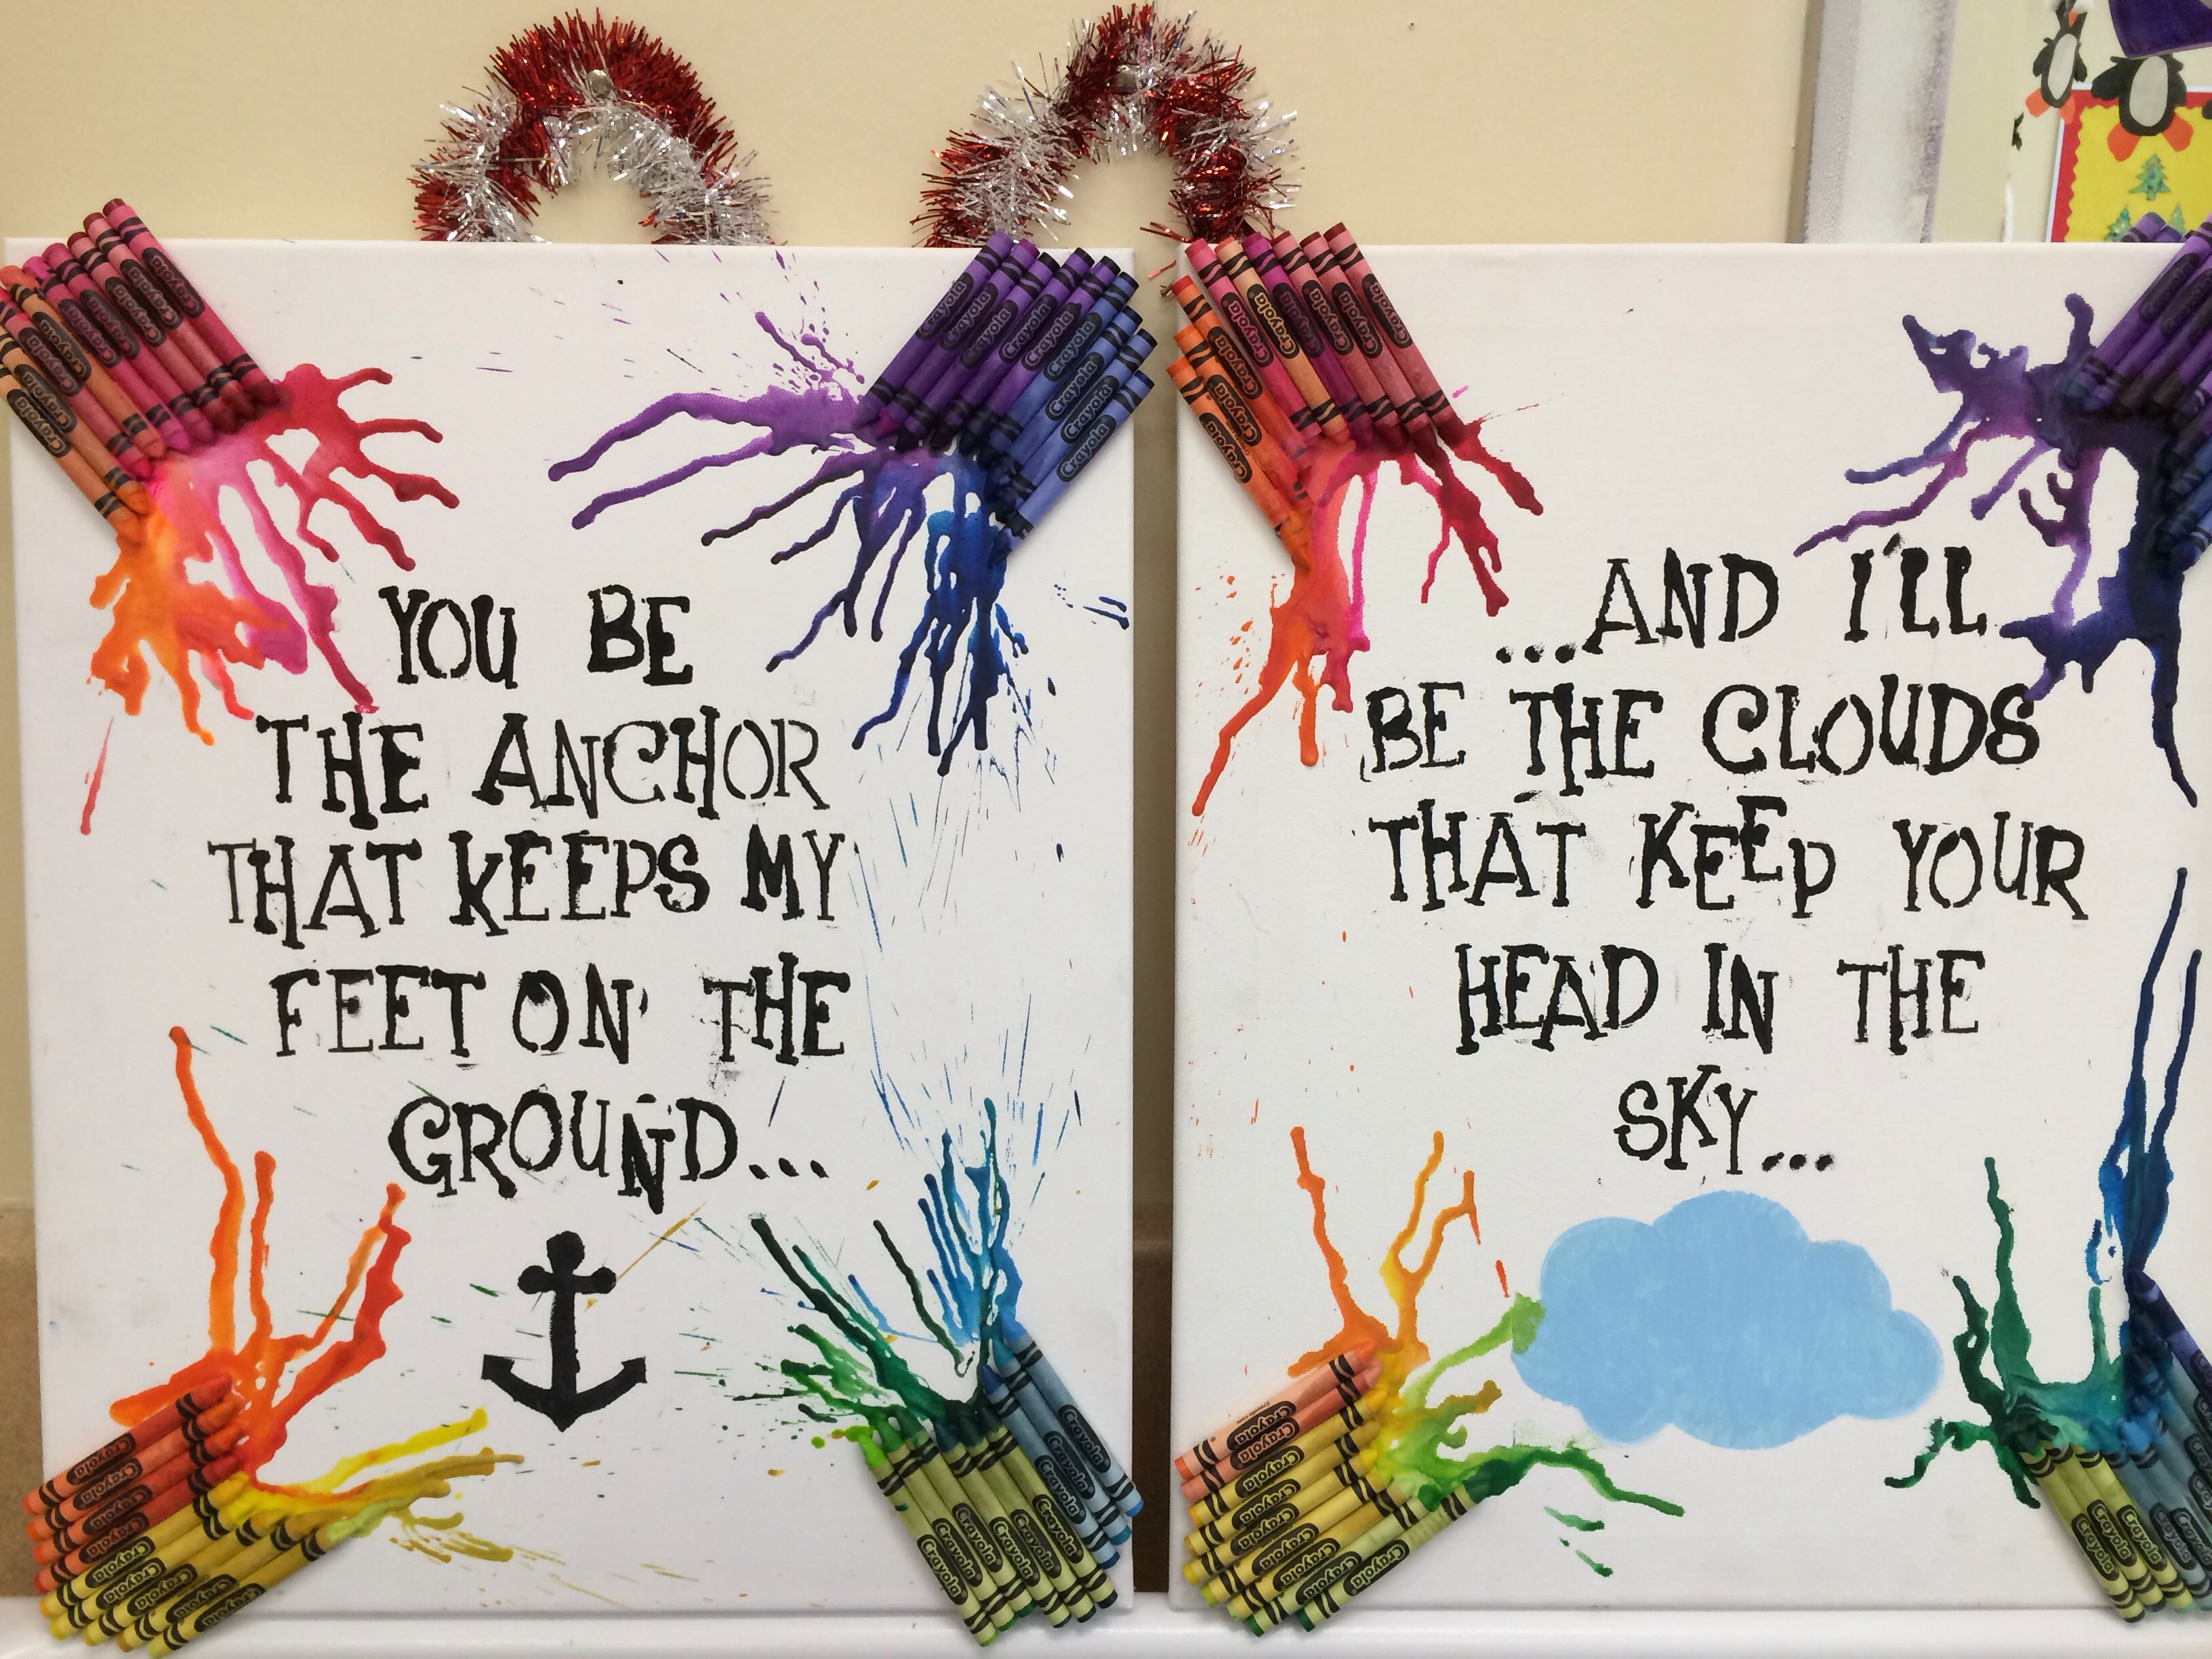 Christmas gift for my best friend. Saw this quote on a